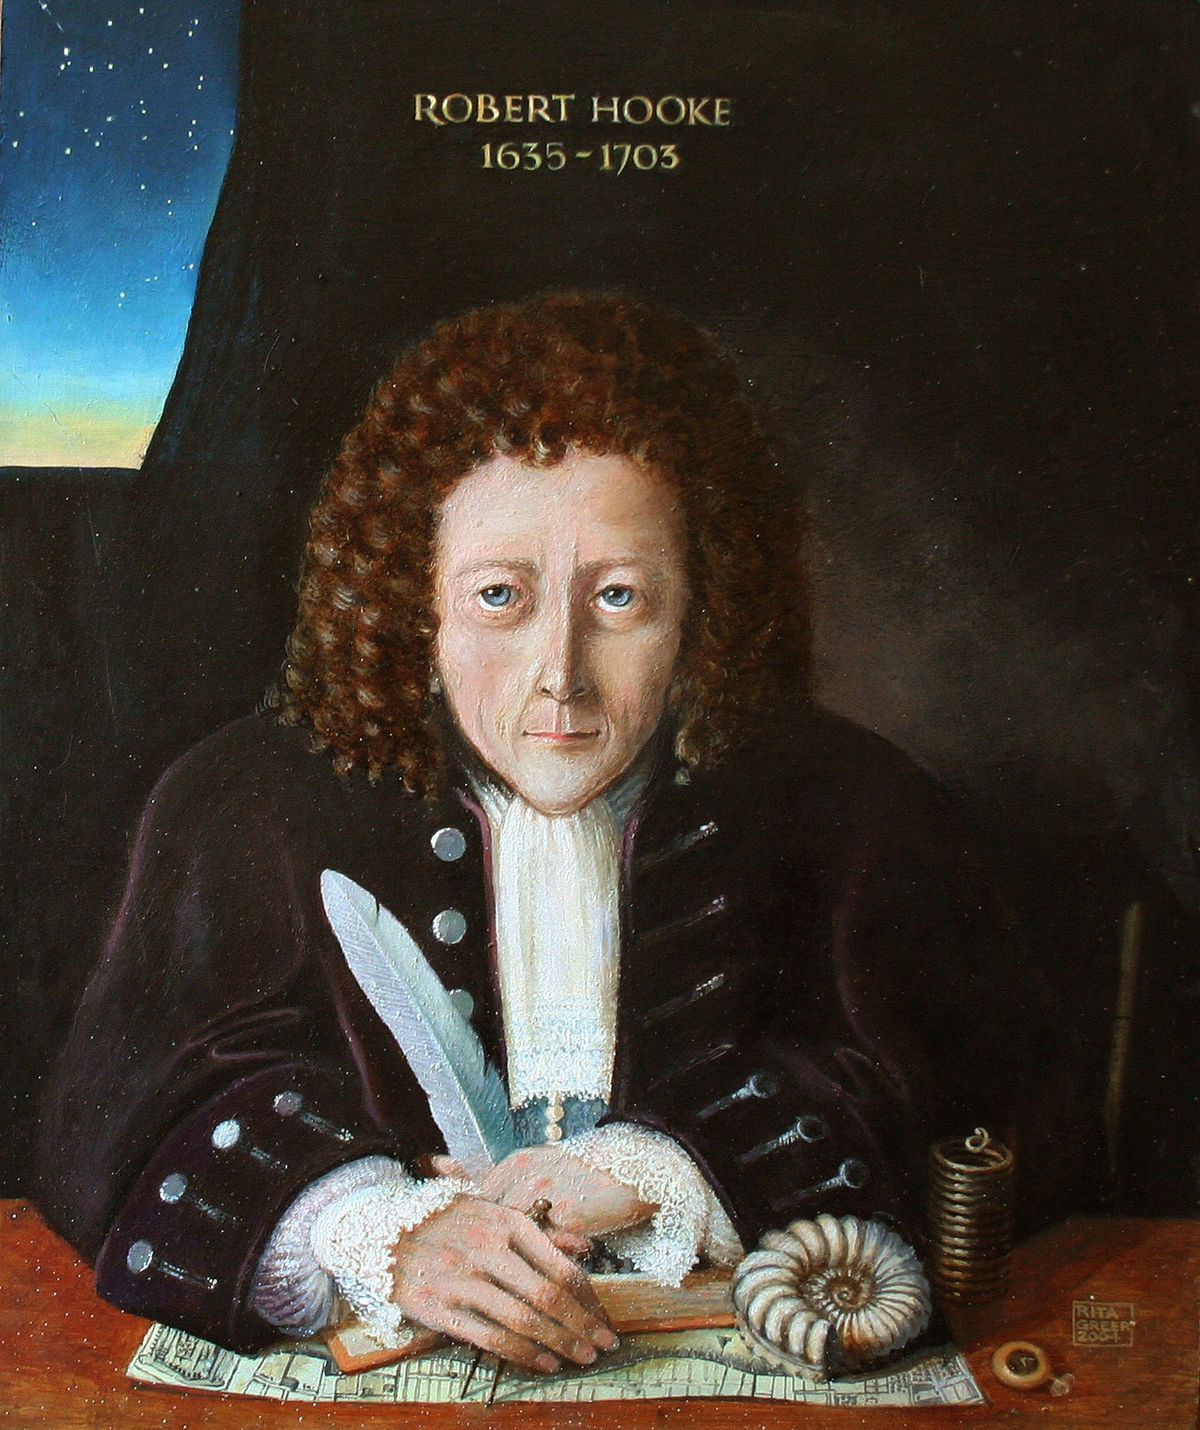 1200px-13_portrait_of_robert_hooke